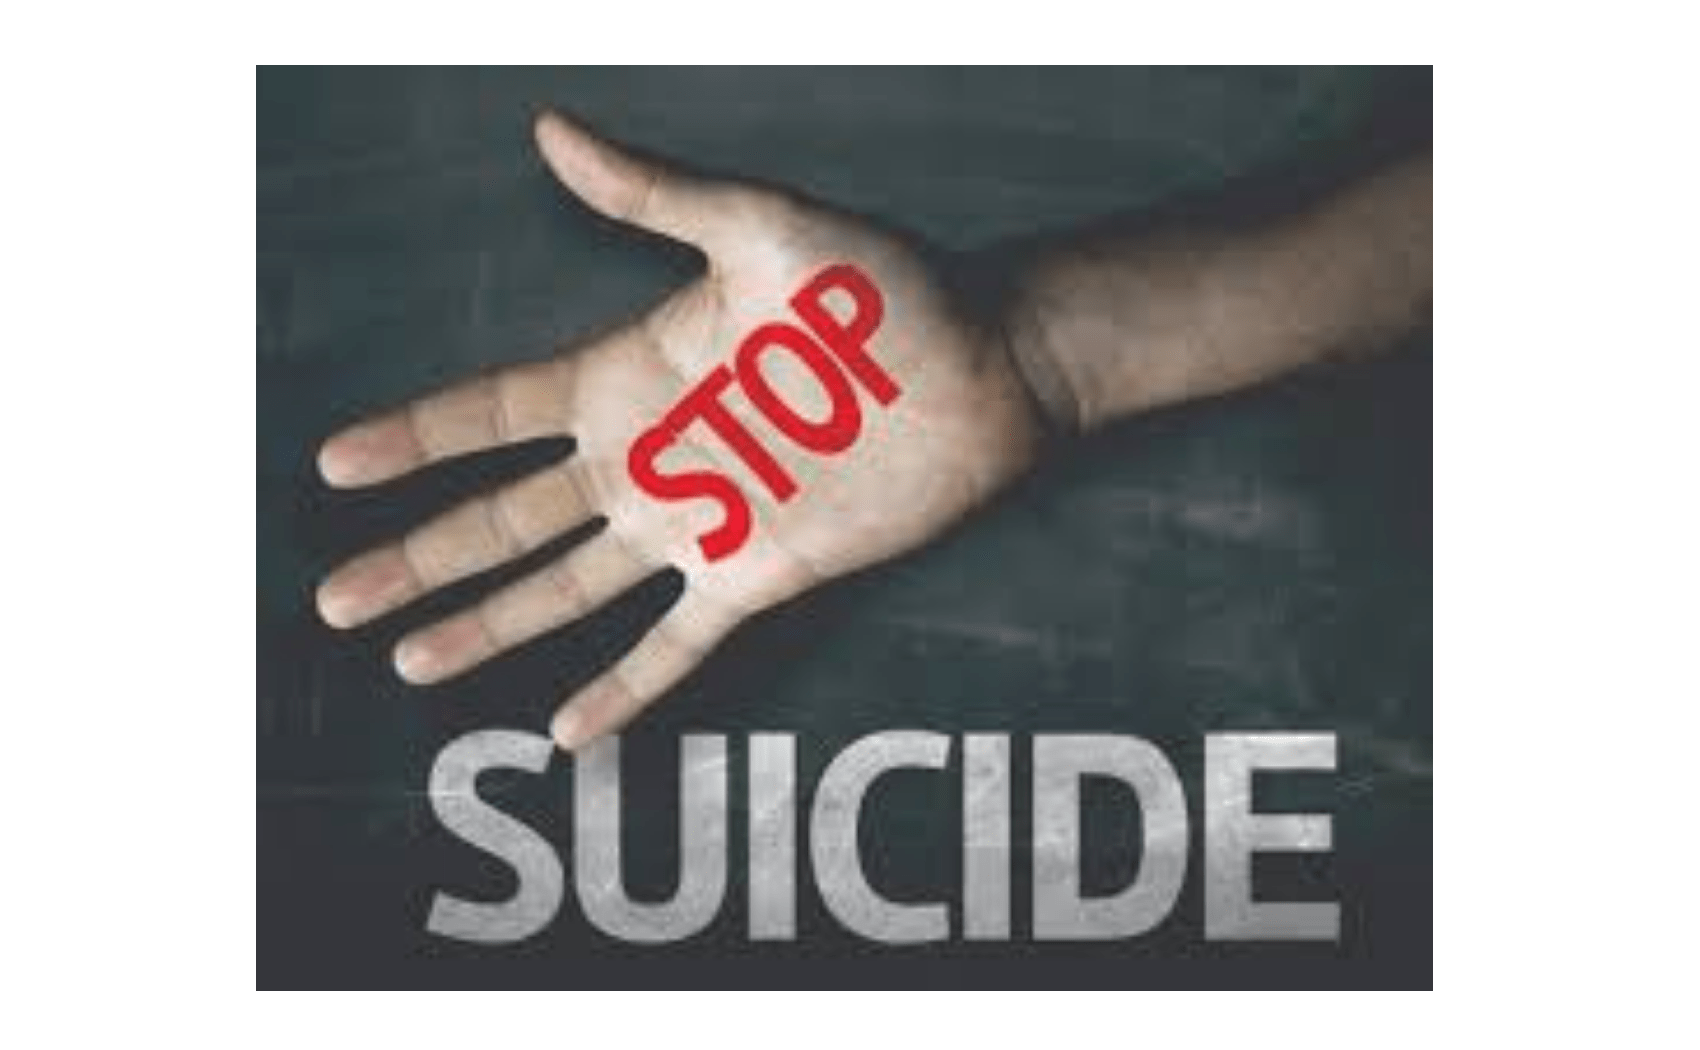 Suicide: A stigma in The Bahamas